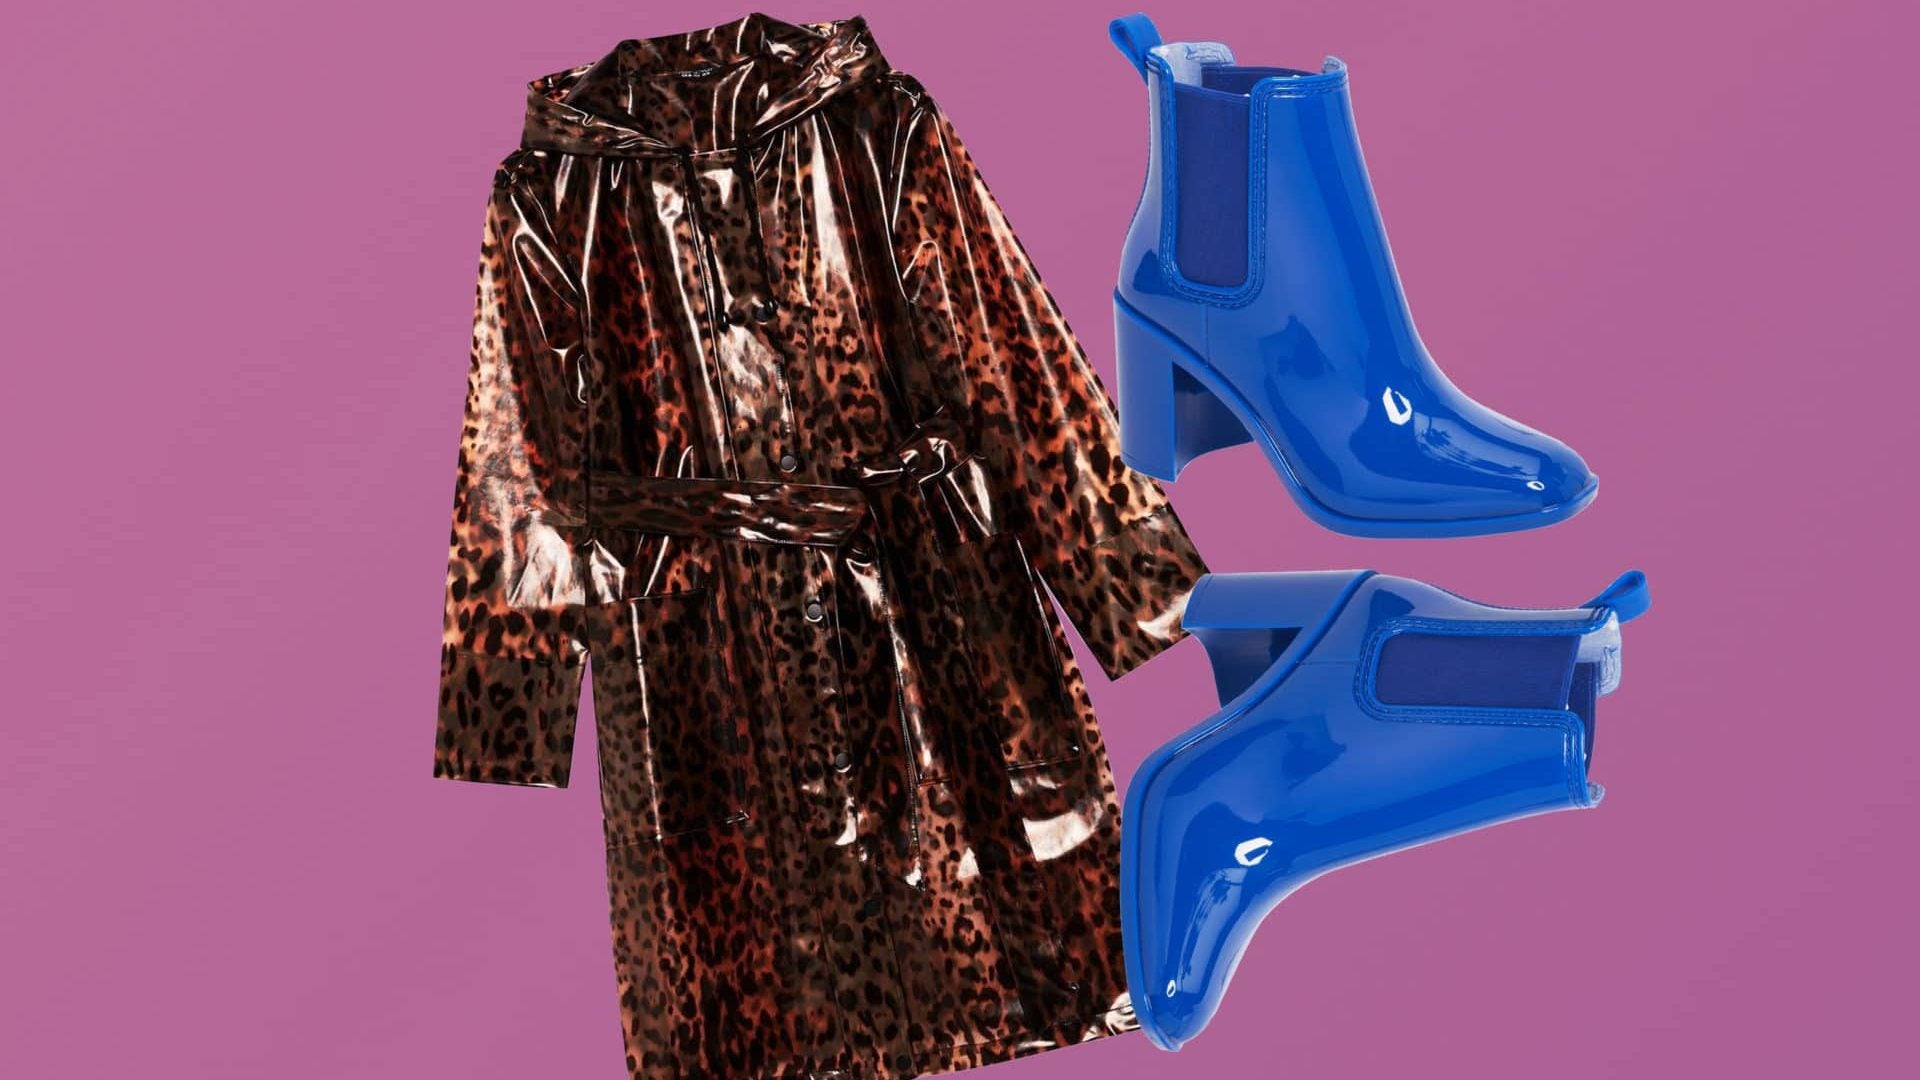 April Showers Are No Match For This Ultra Chic Rain Gear